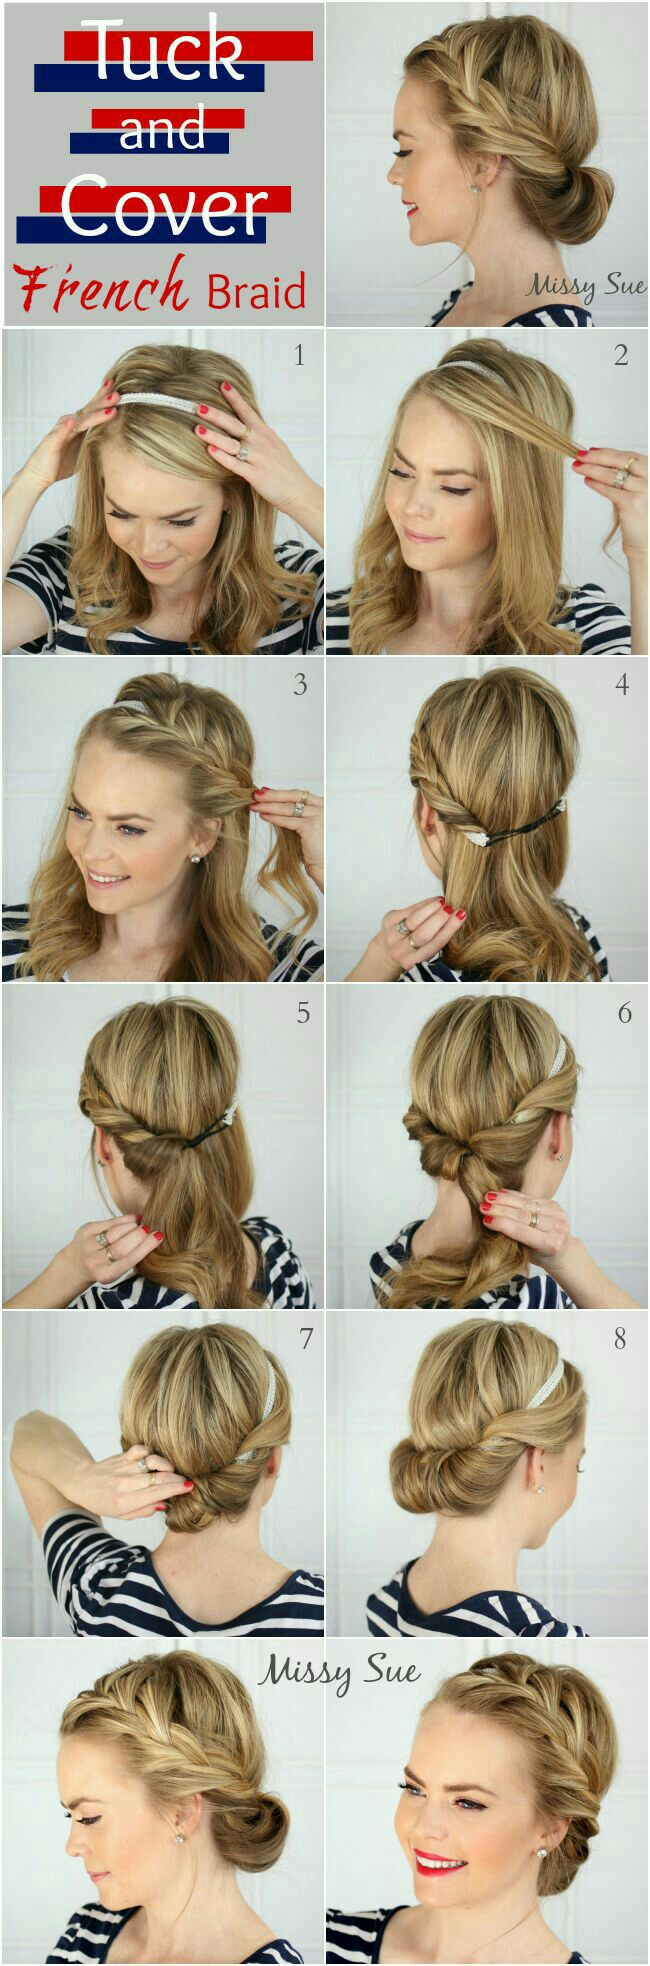 Pin by aisa meha on hair pinterest hair style easy hairstyles